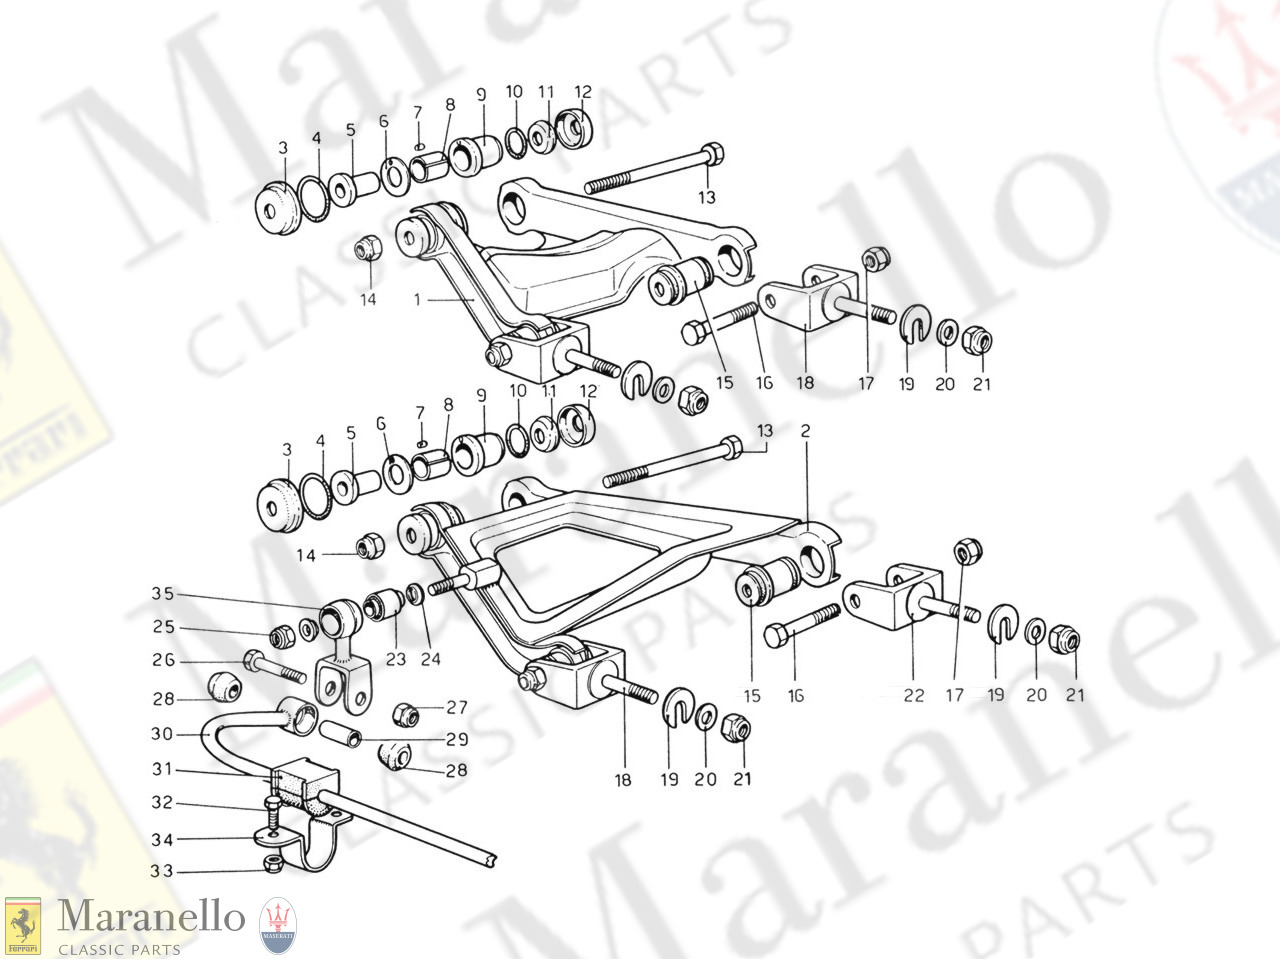 035 - Rear Suspension - Levers